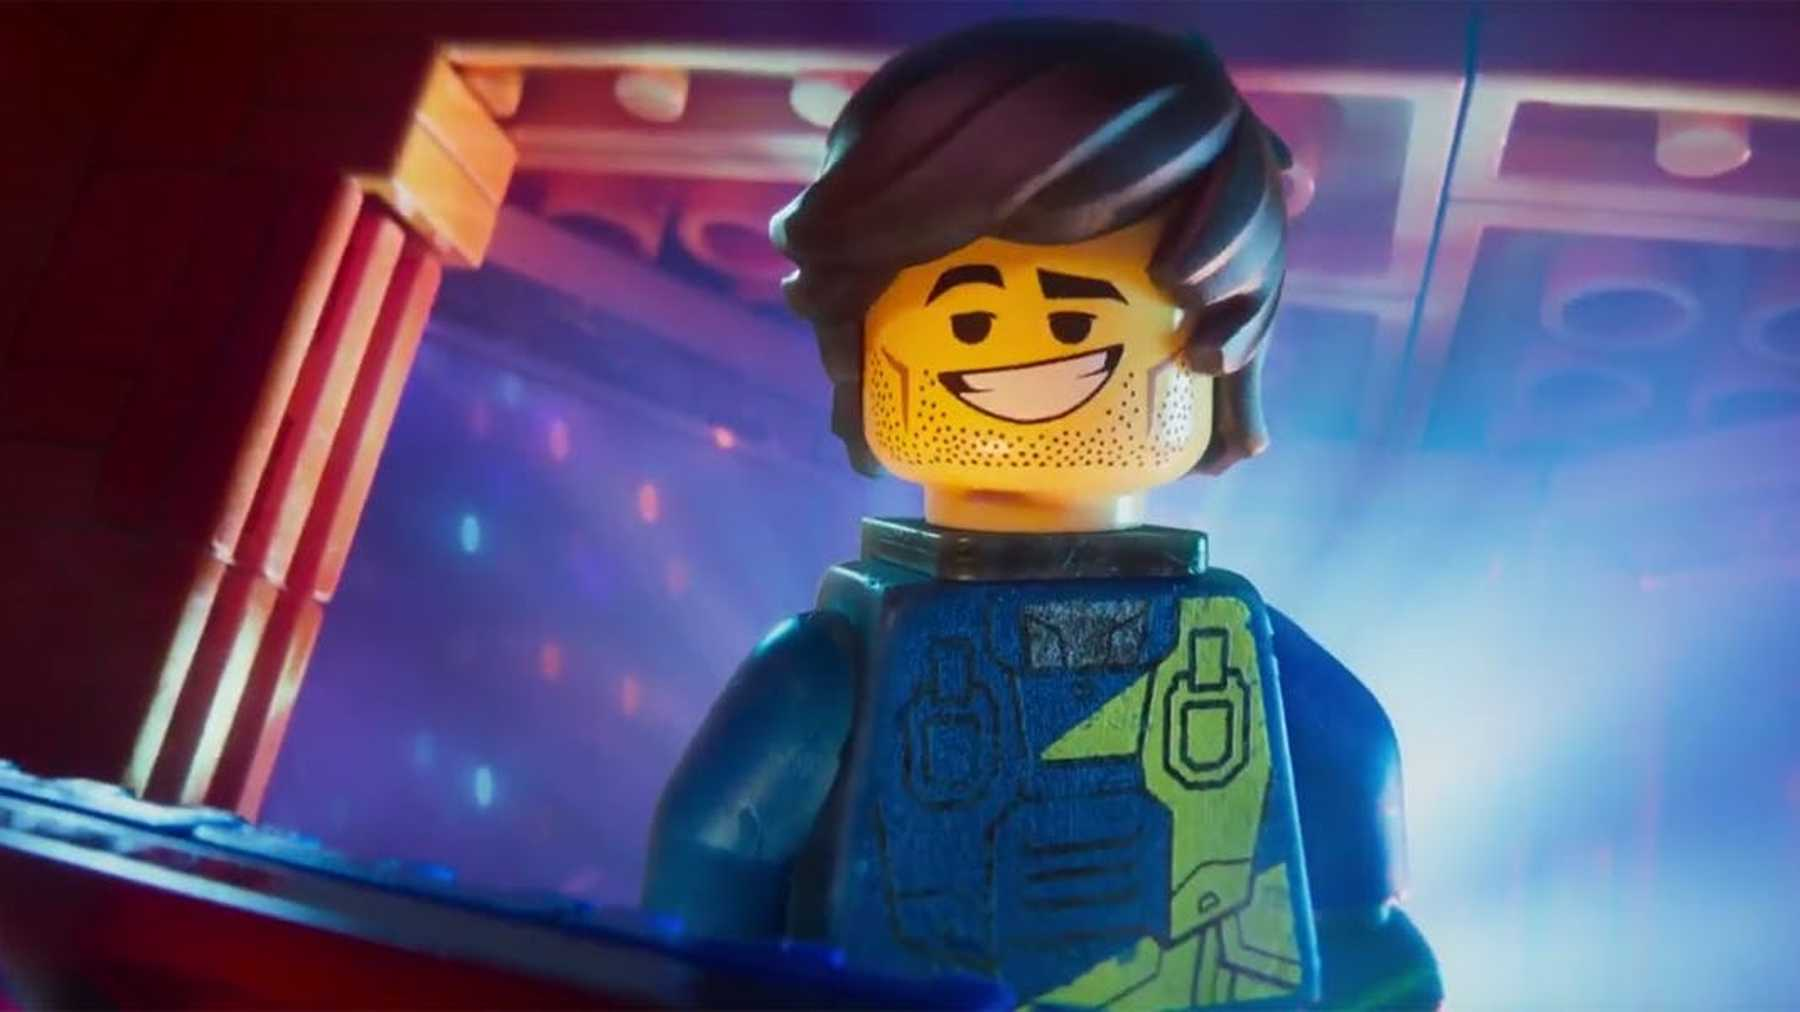 The Lego Movie 2 Meet Rex Dangervest In The New Trailer Movies Empire